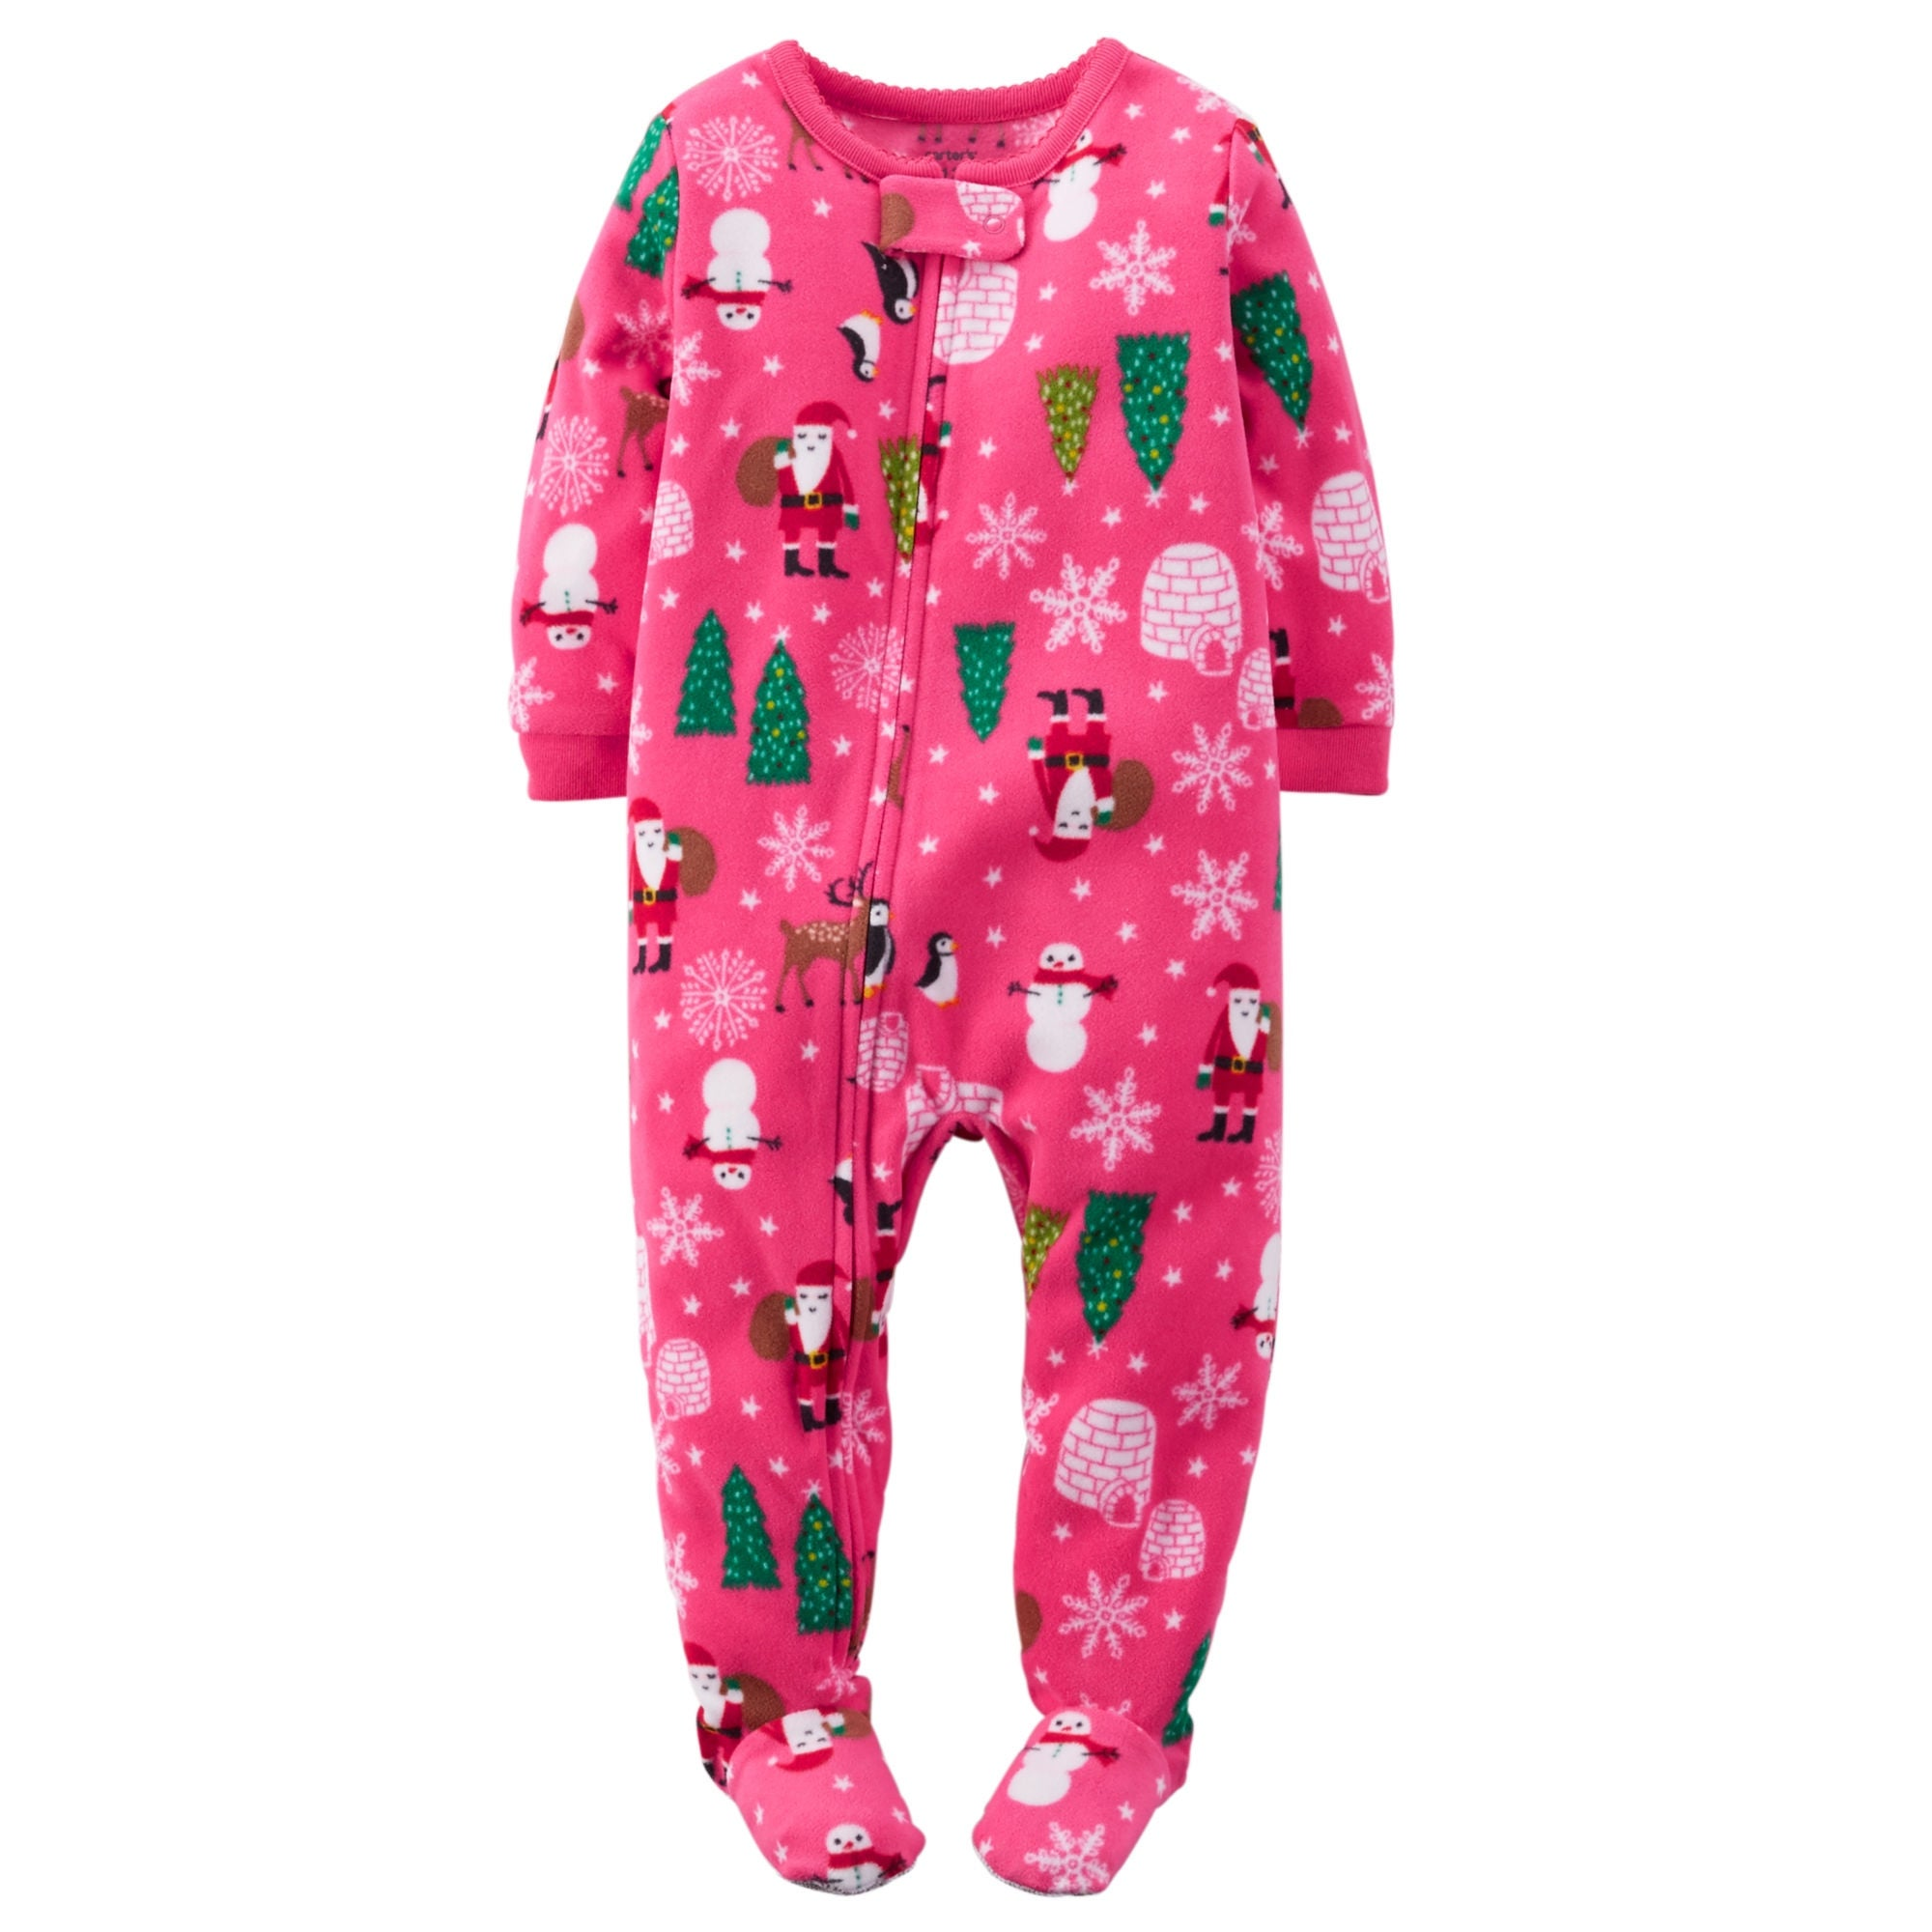 a8de2257fe Shop Carter s Baby Girls  Holiday Microfleece 1 Piece Footed Sleeper Pajamas  - Free Shipping On Orders Over  45 - Overstock.com - 26965881